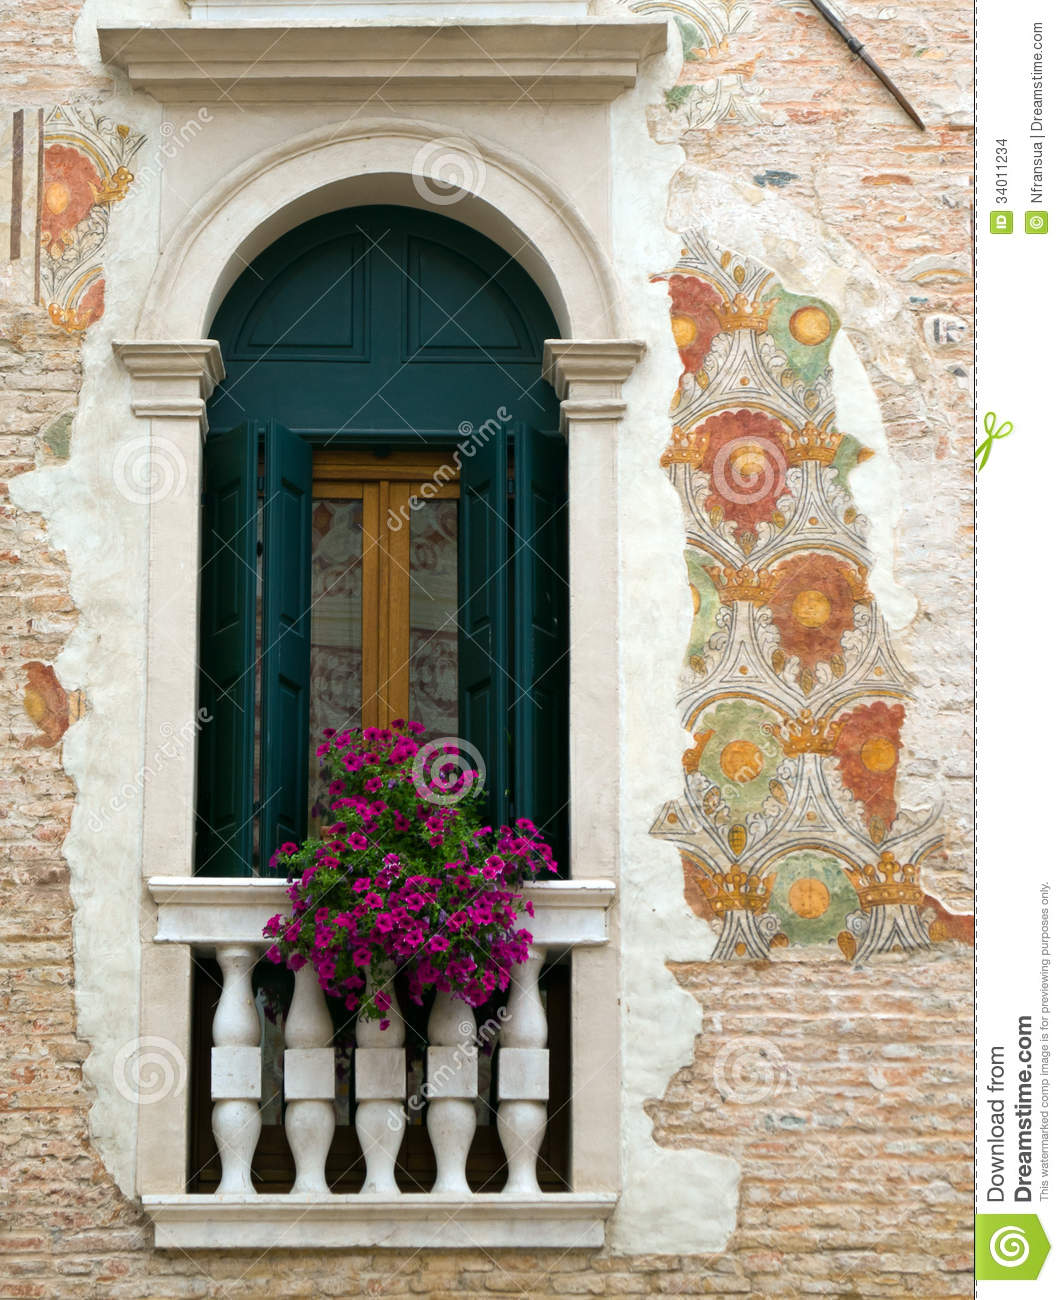 Wall Painting With A Window Stock Photo Image Of Detail Antique